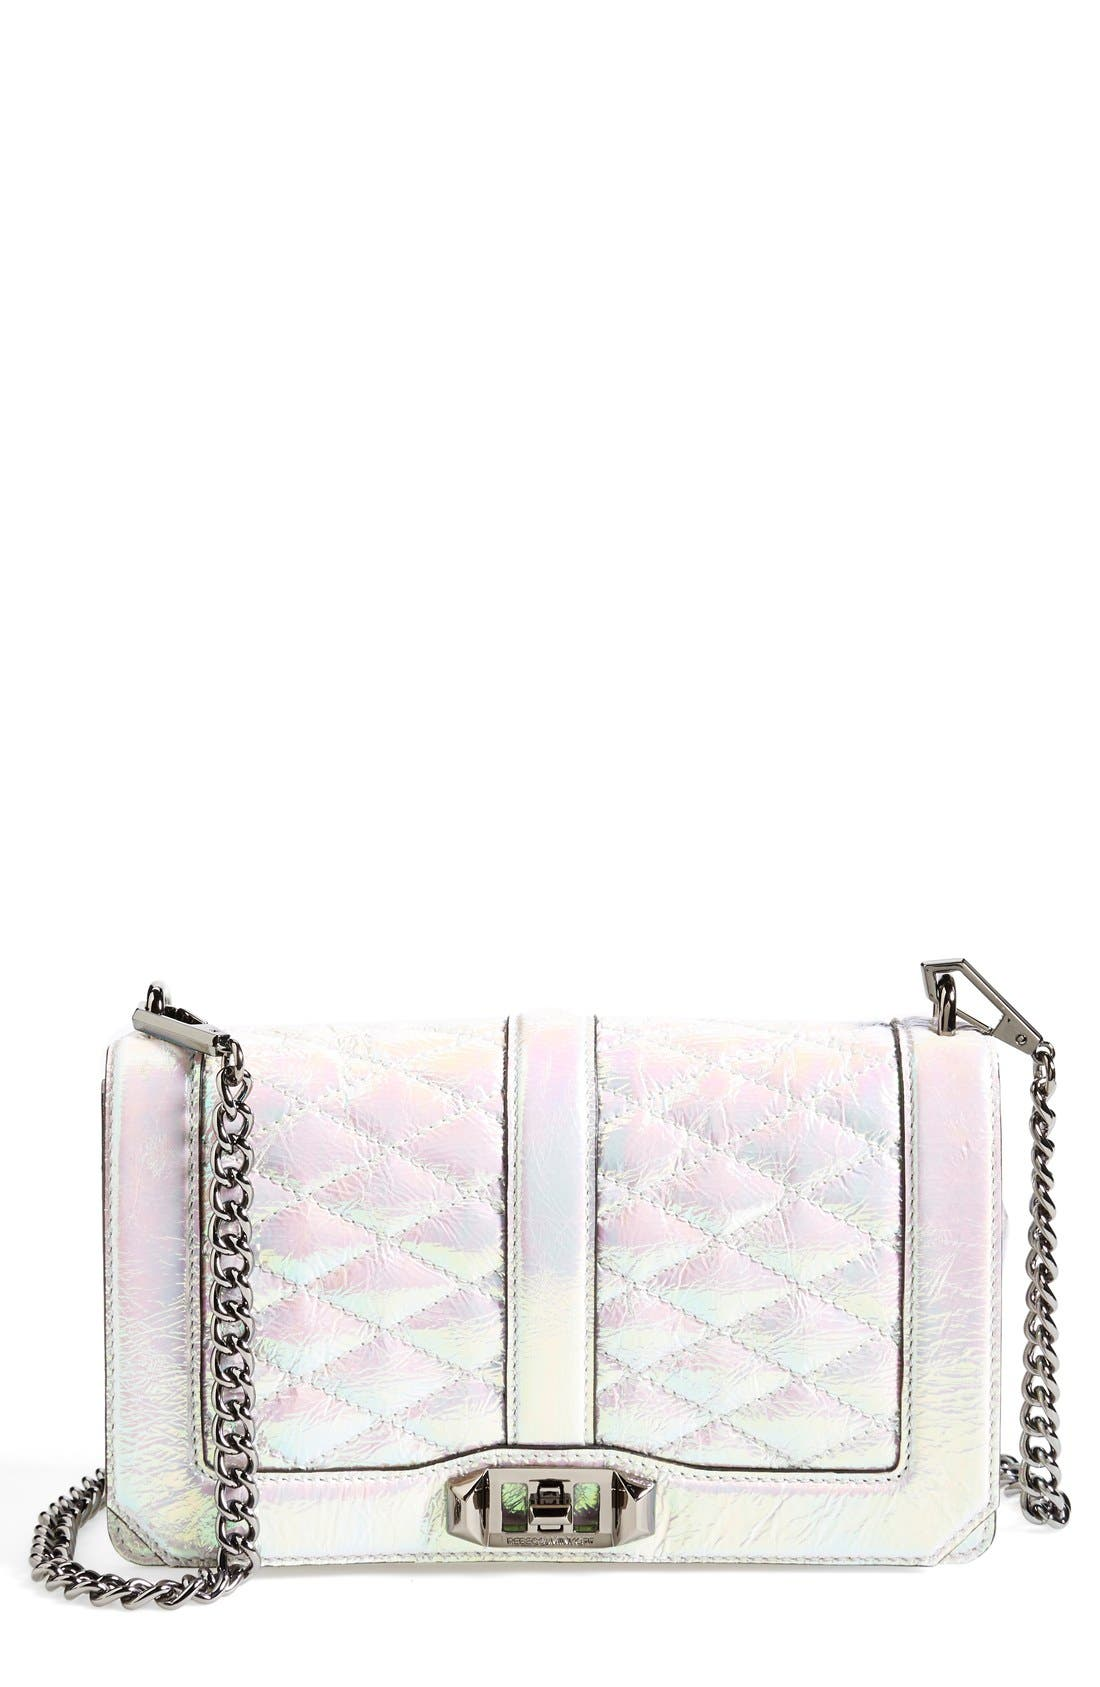 Alternate Image 1 Selected - Rebecca Minkoff 'Love' Crossbody Bag